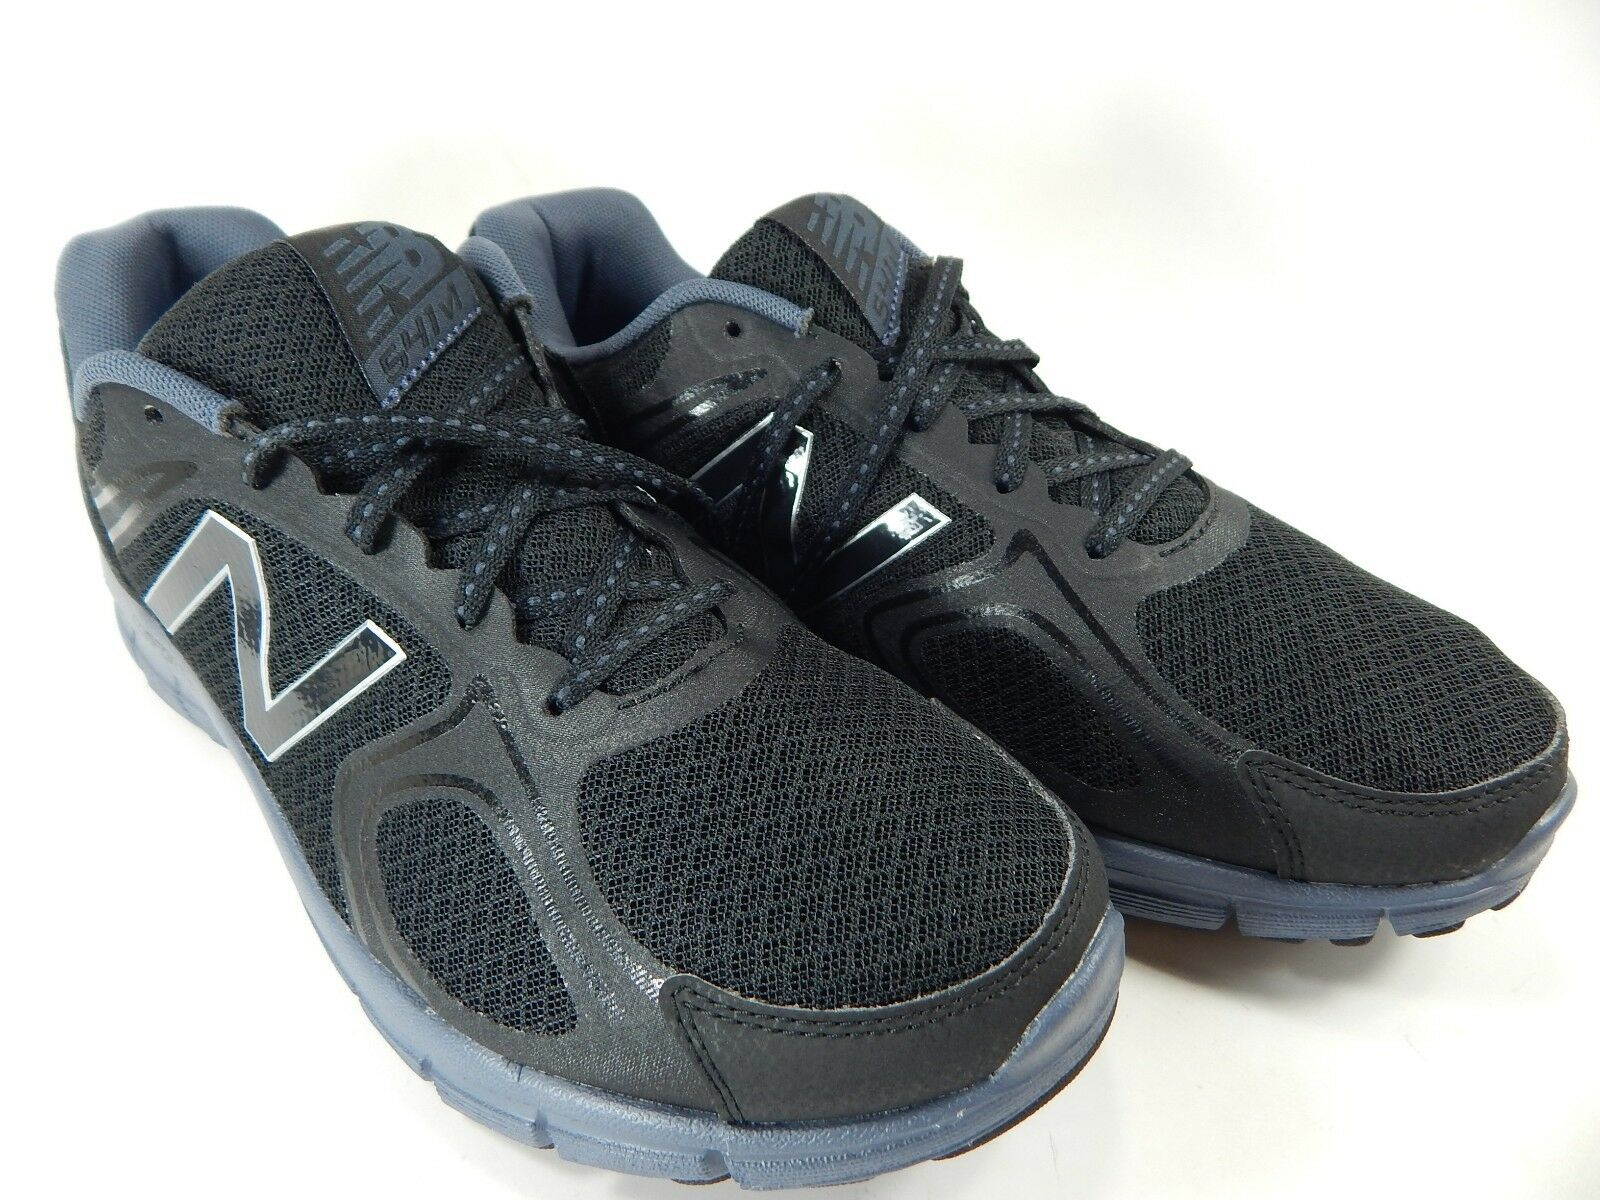 New Balance 541 v1 Size US 8.5 4E EXTRA WIDE Men's Running Shoes ME541CB1